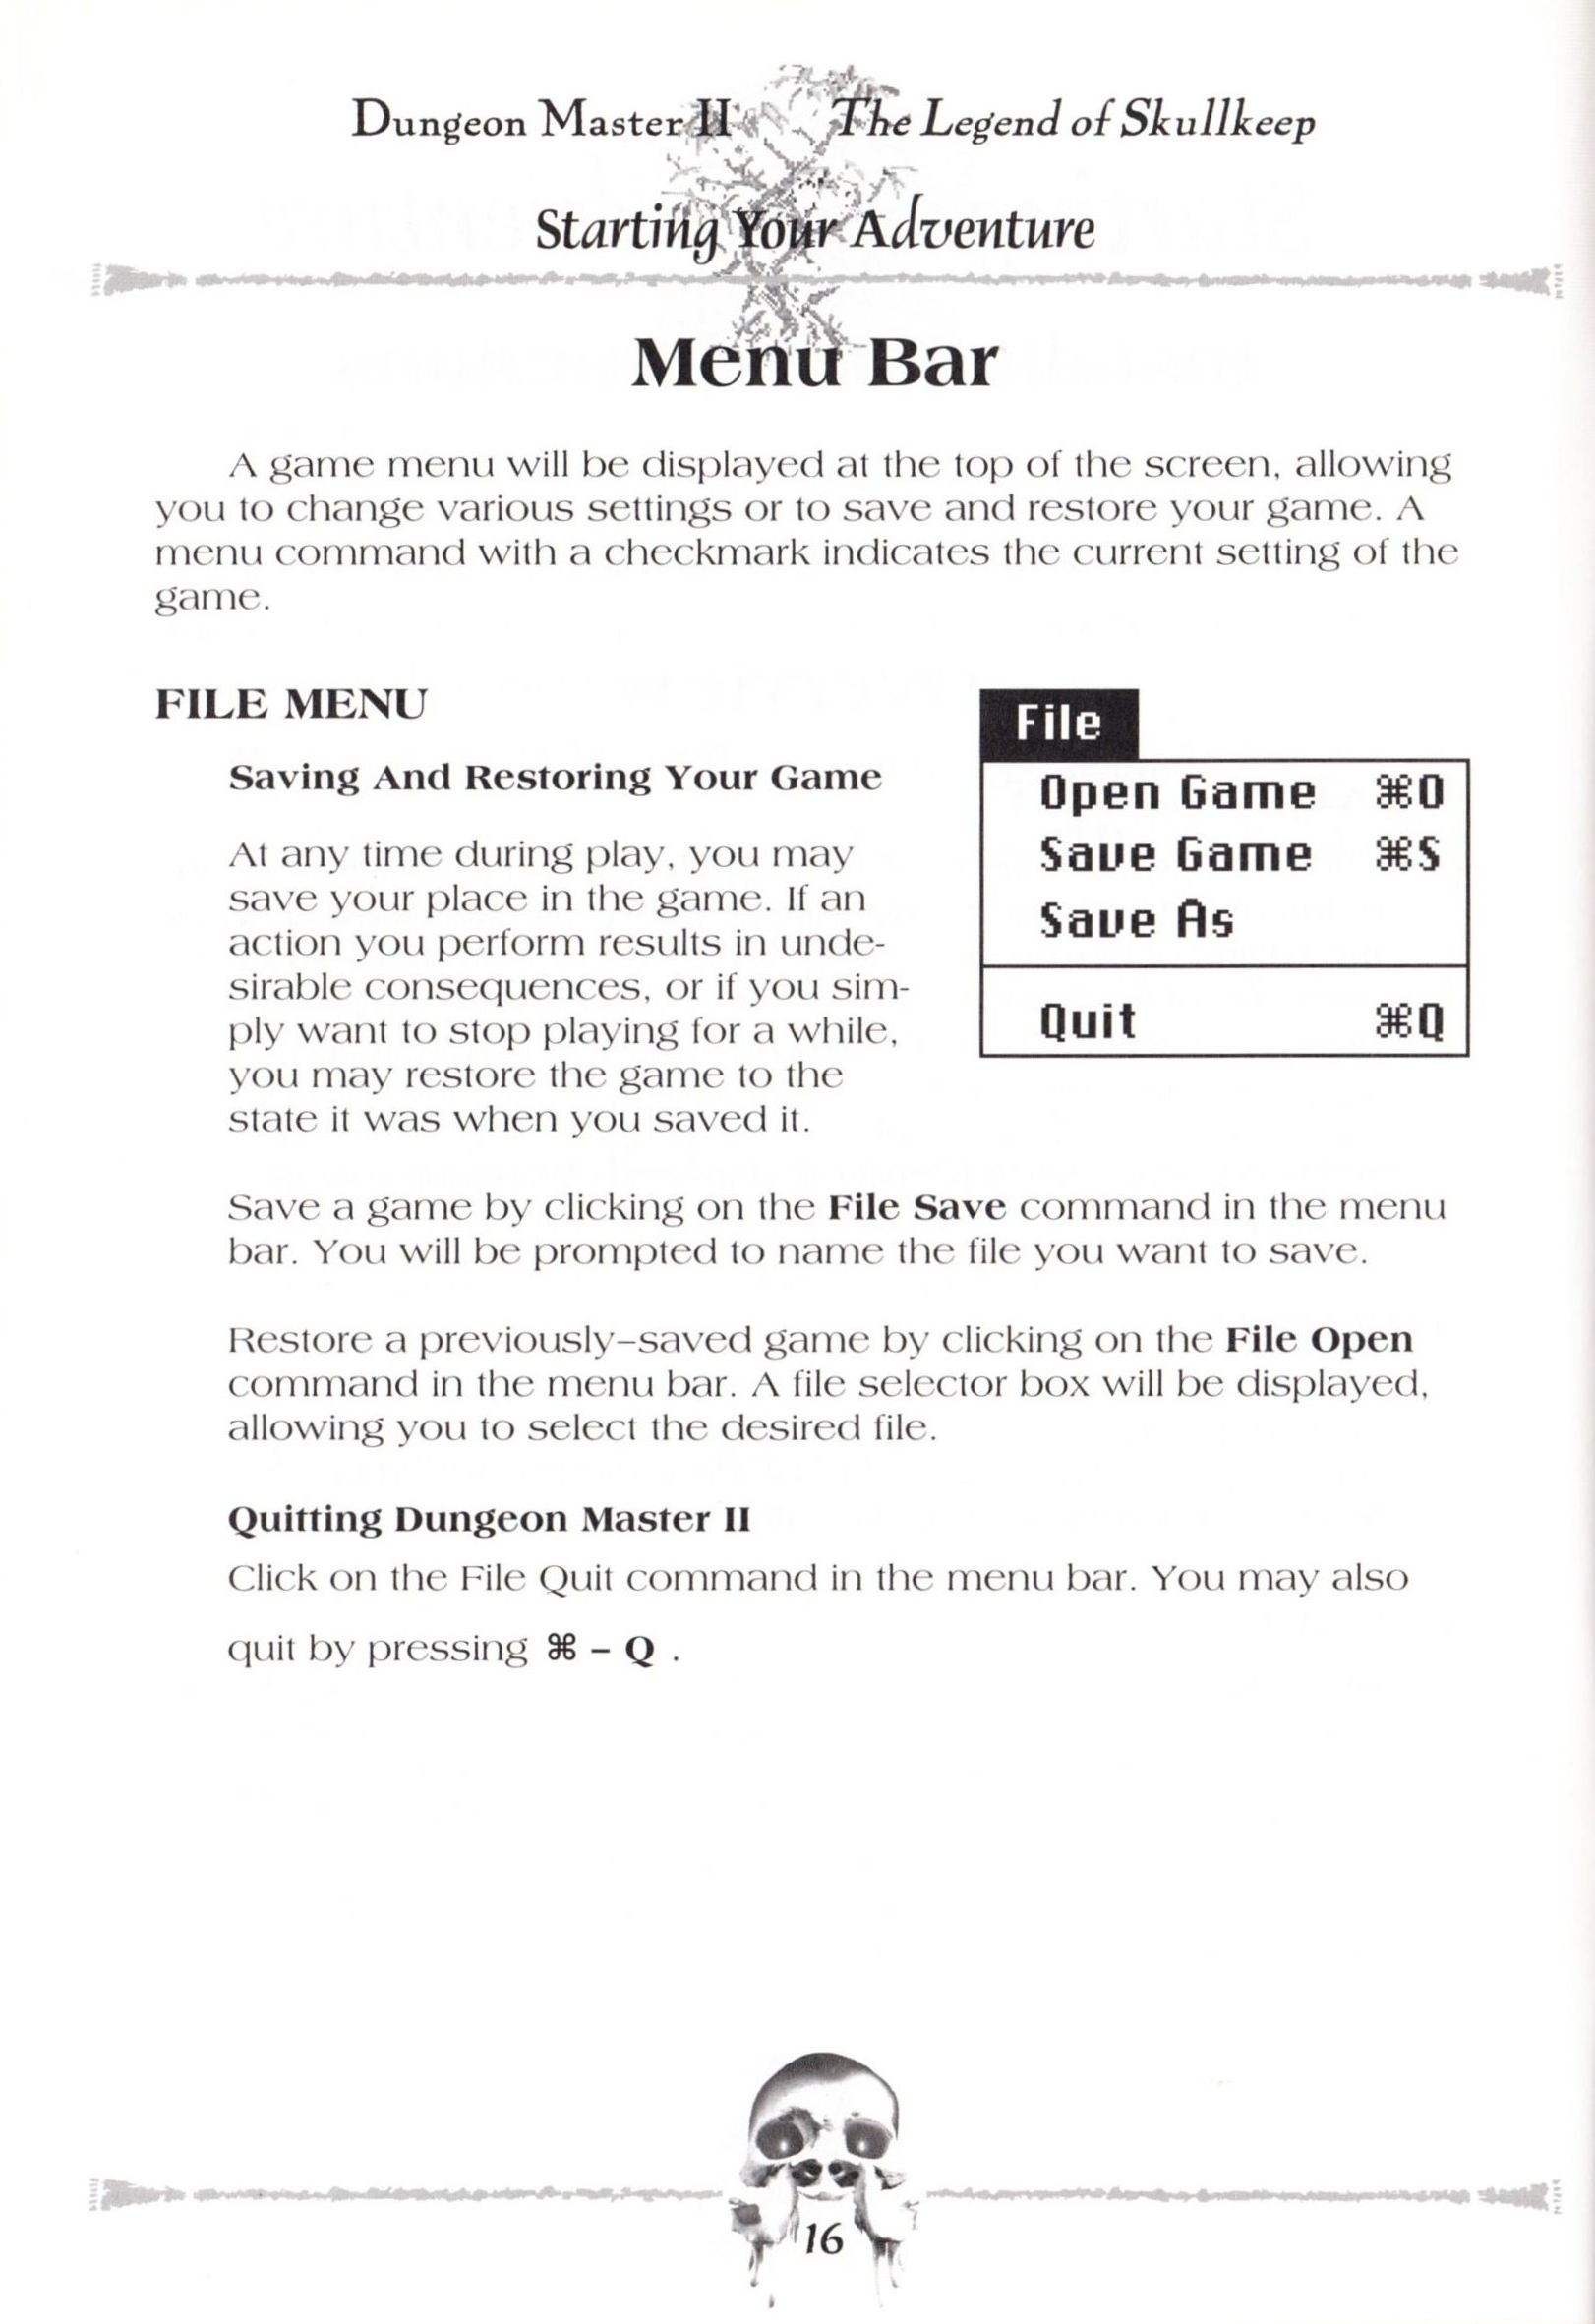 Game - Dungeon Master II - US - Macintosh - Manual - Page 018 - Scan